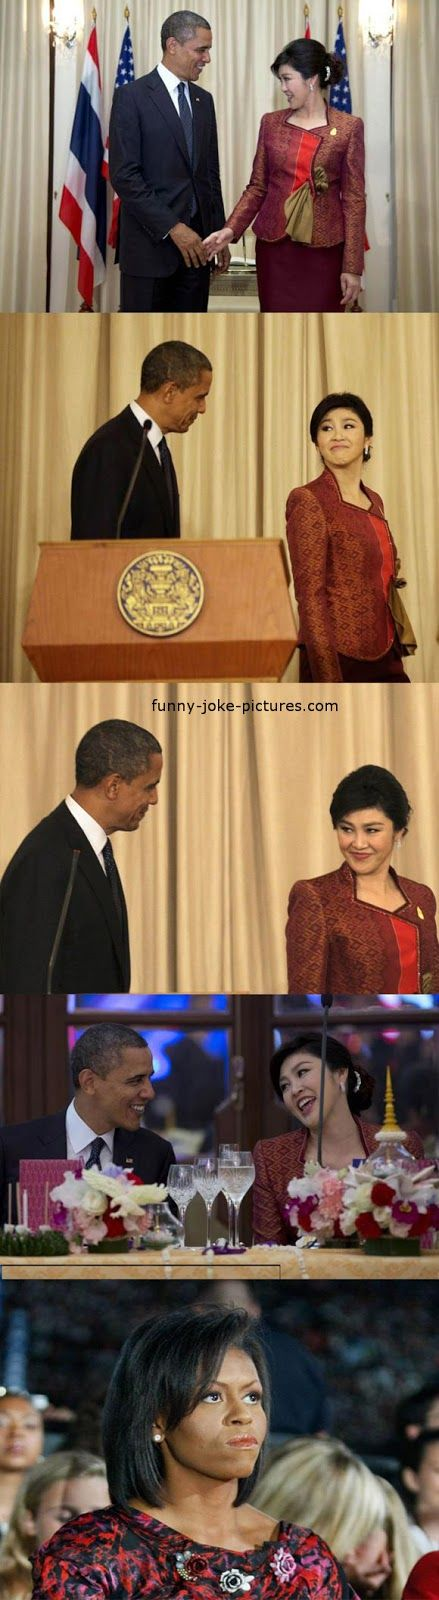 Funny President Obama Flirting Picture